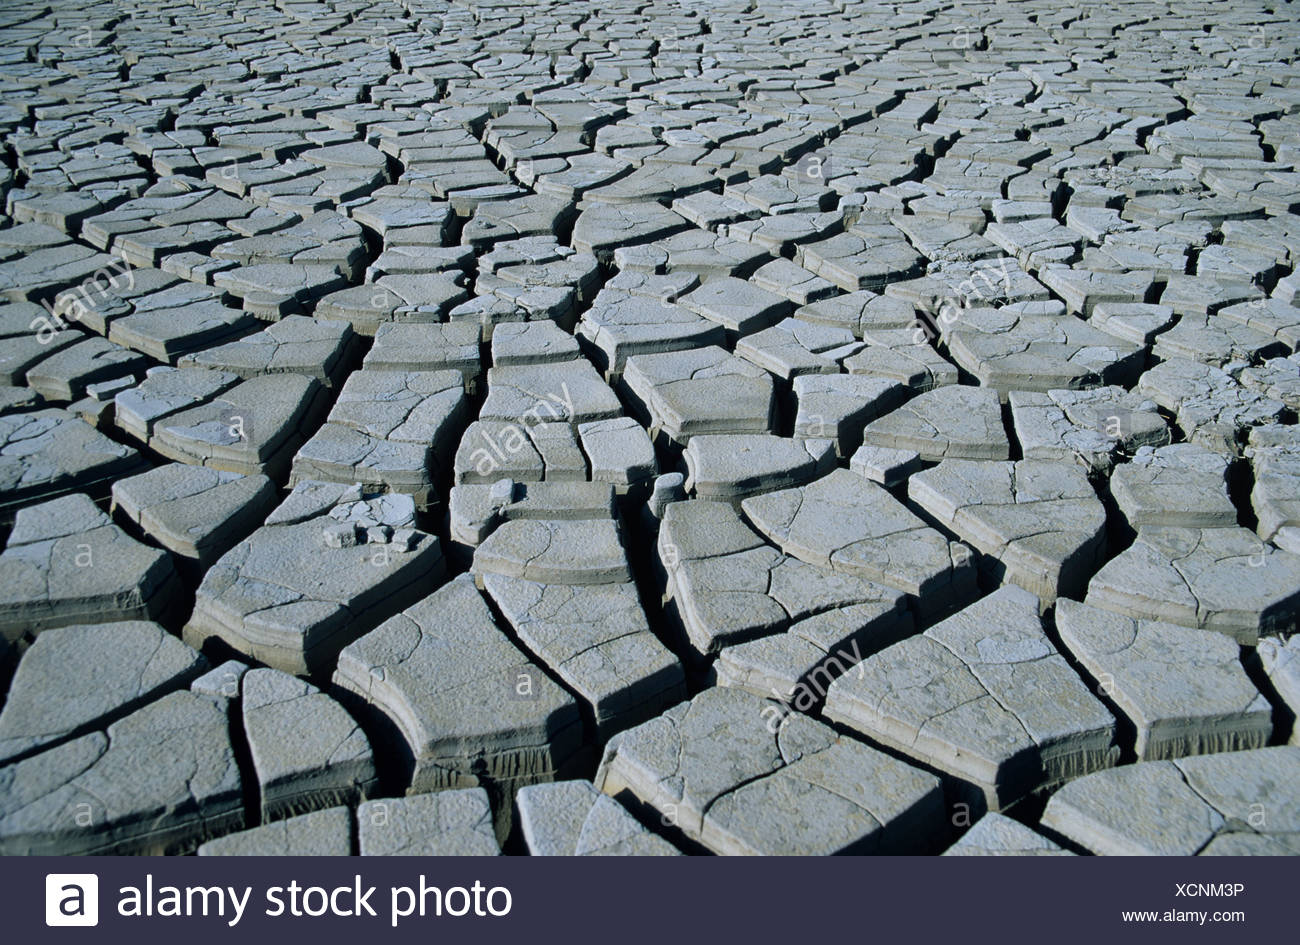 cracked mud on dried up lake bed after drought Cuba - Stock Image